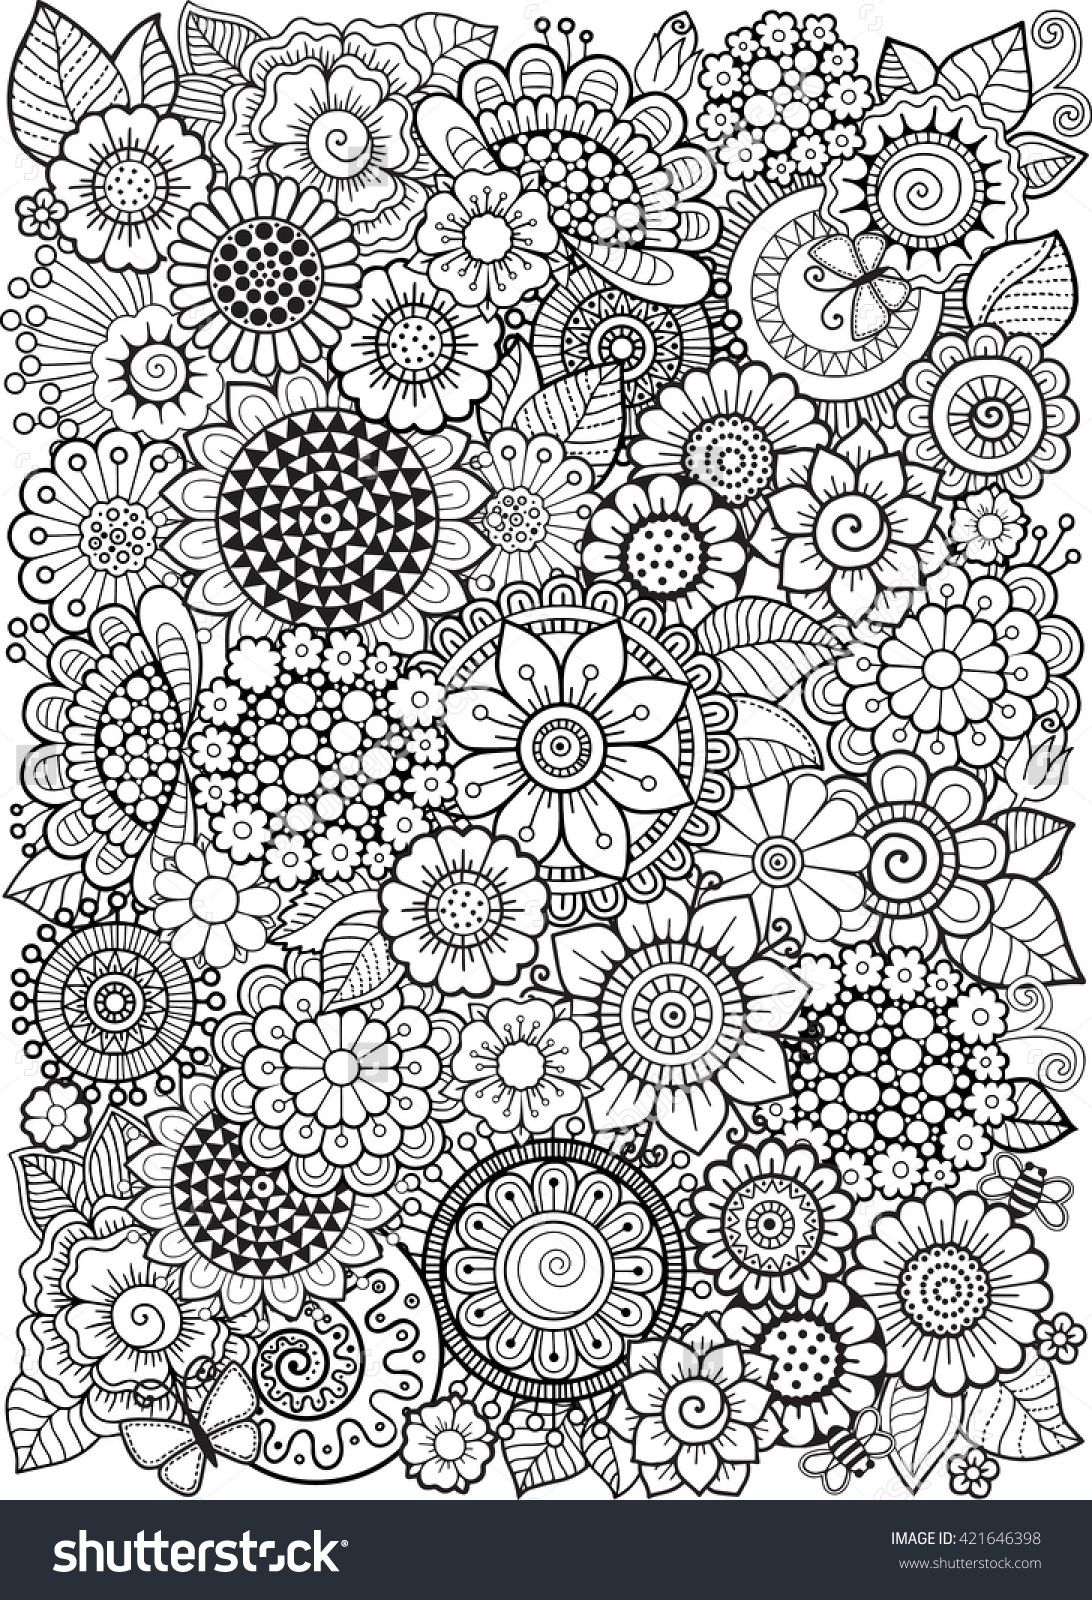 Stress coloring books - Coloring Book Anti Stress For Adults Doodle Elements Decorative Floral